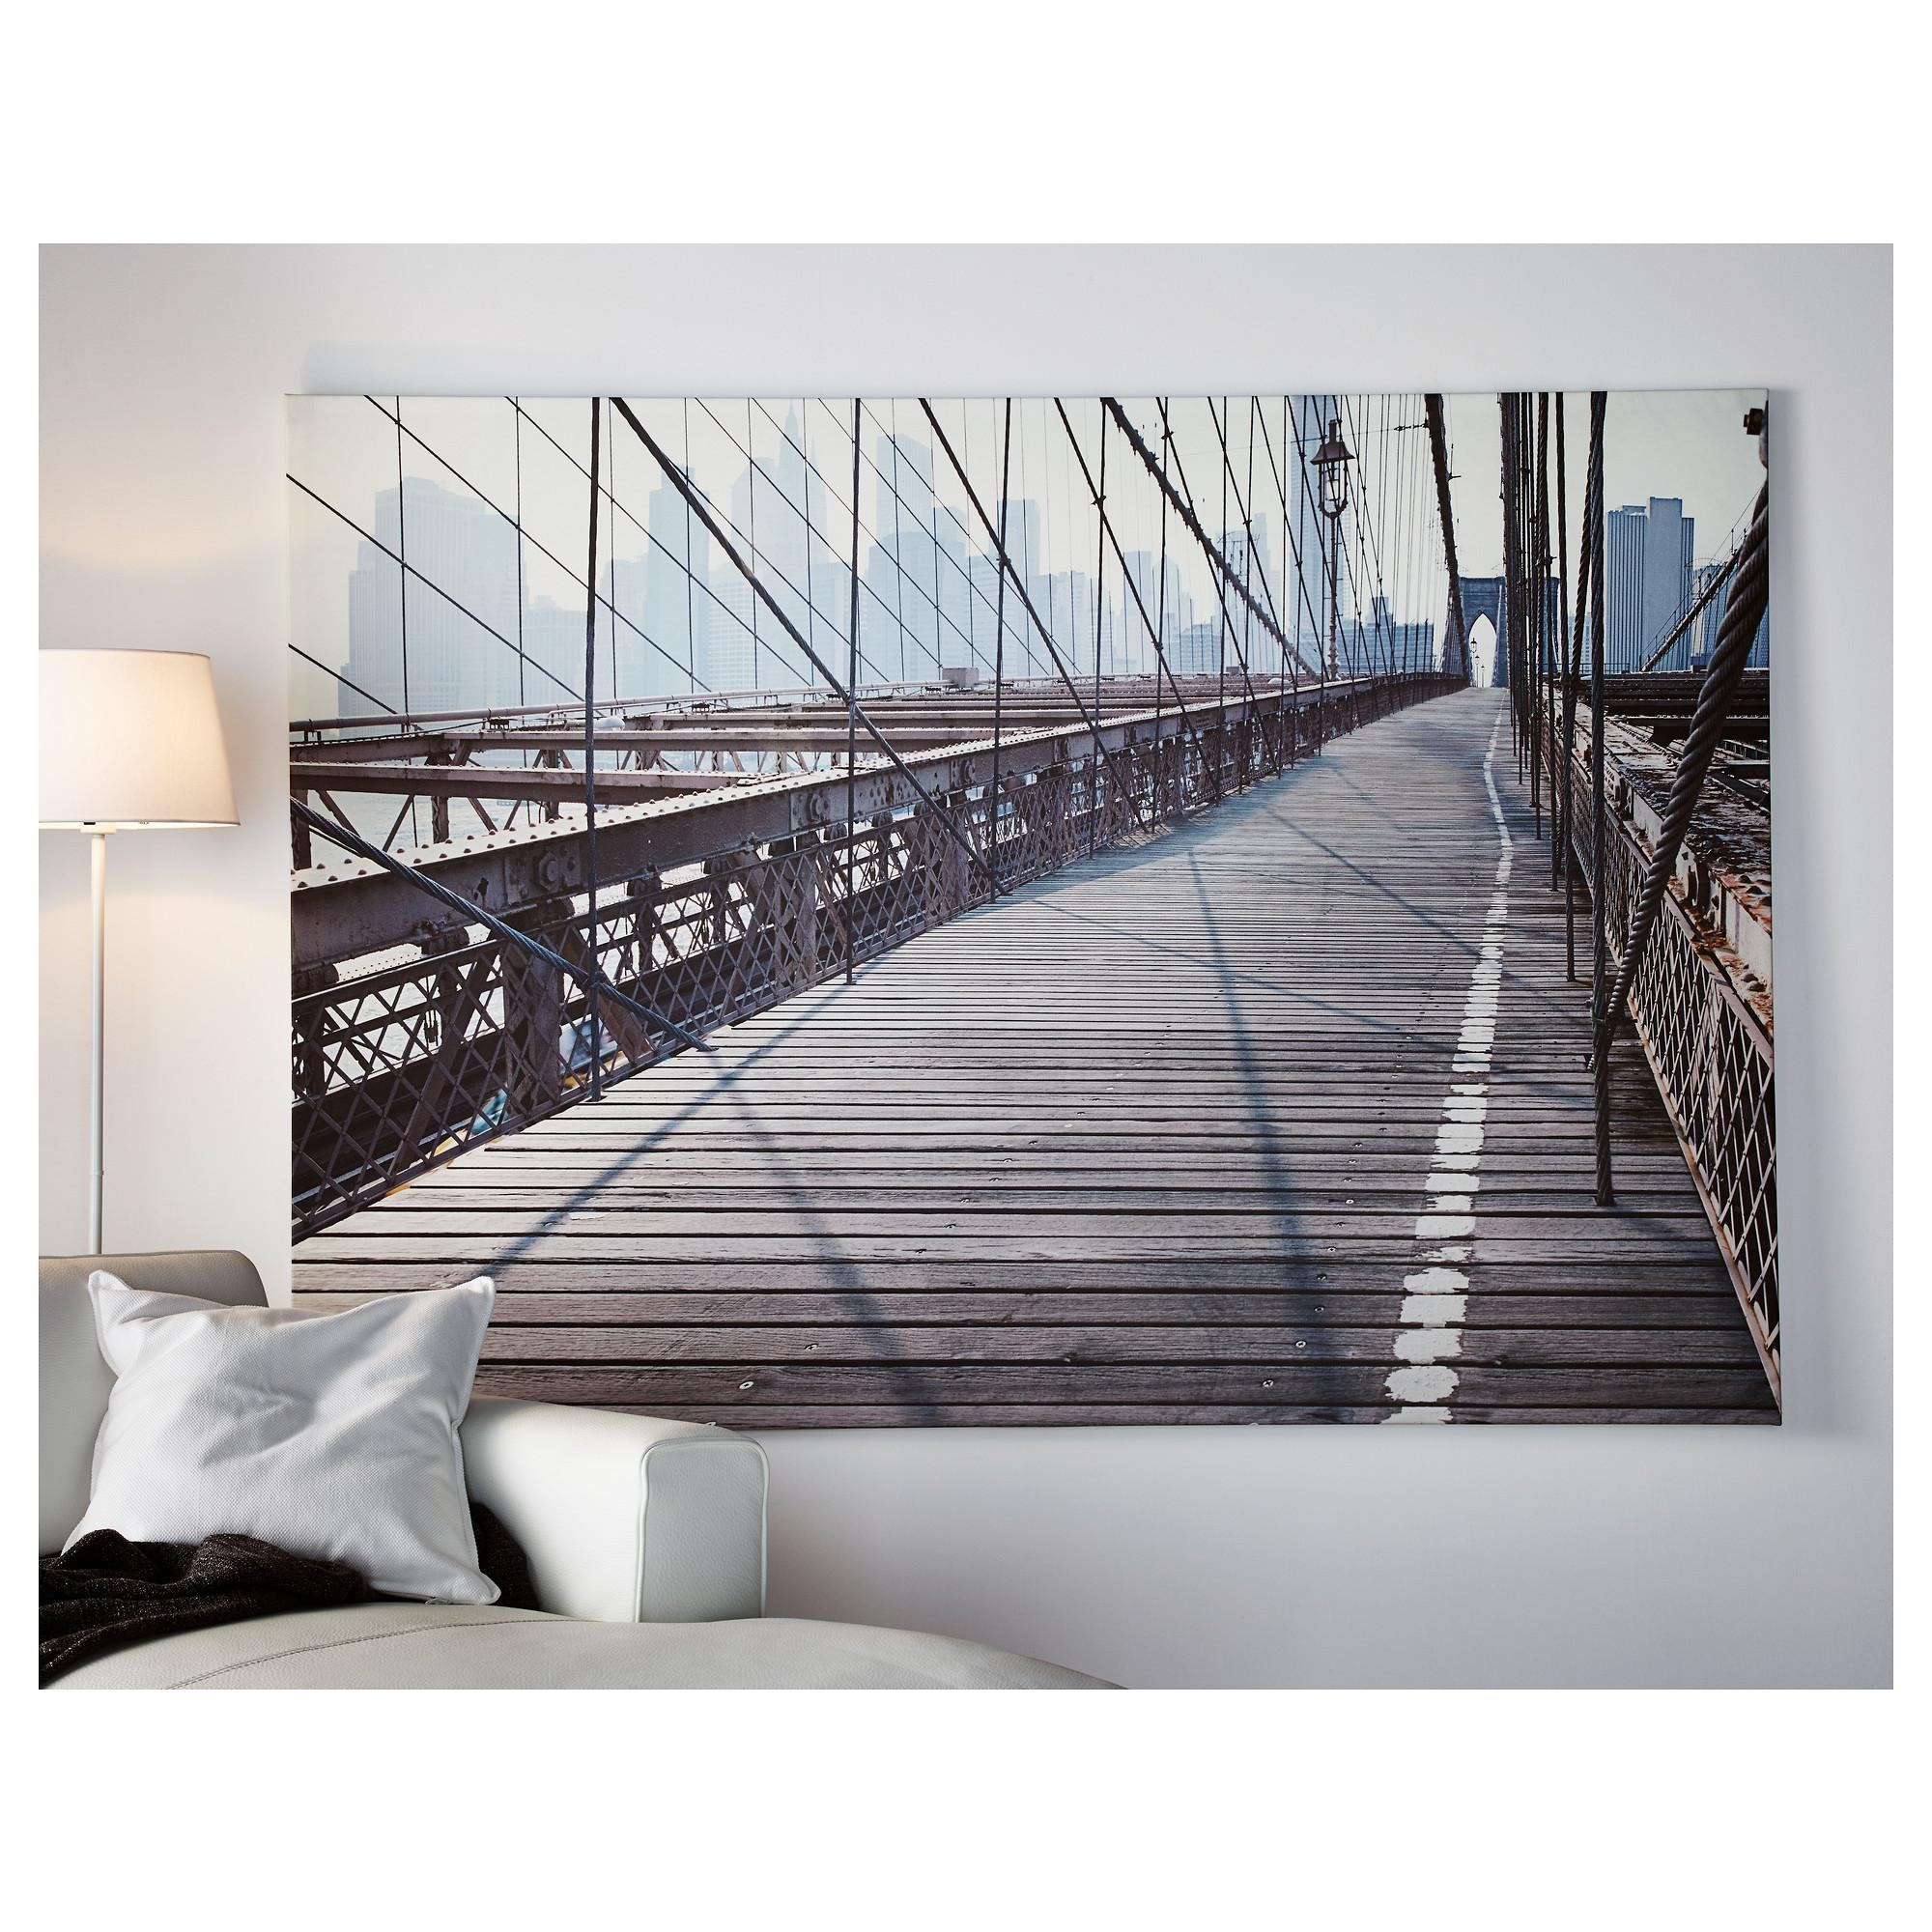 Featured Image of Ikea Brooklyn Bridge Wall Art